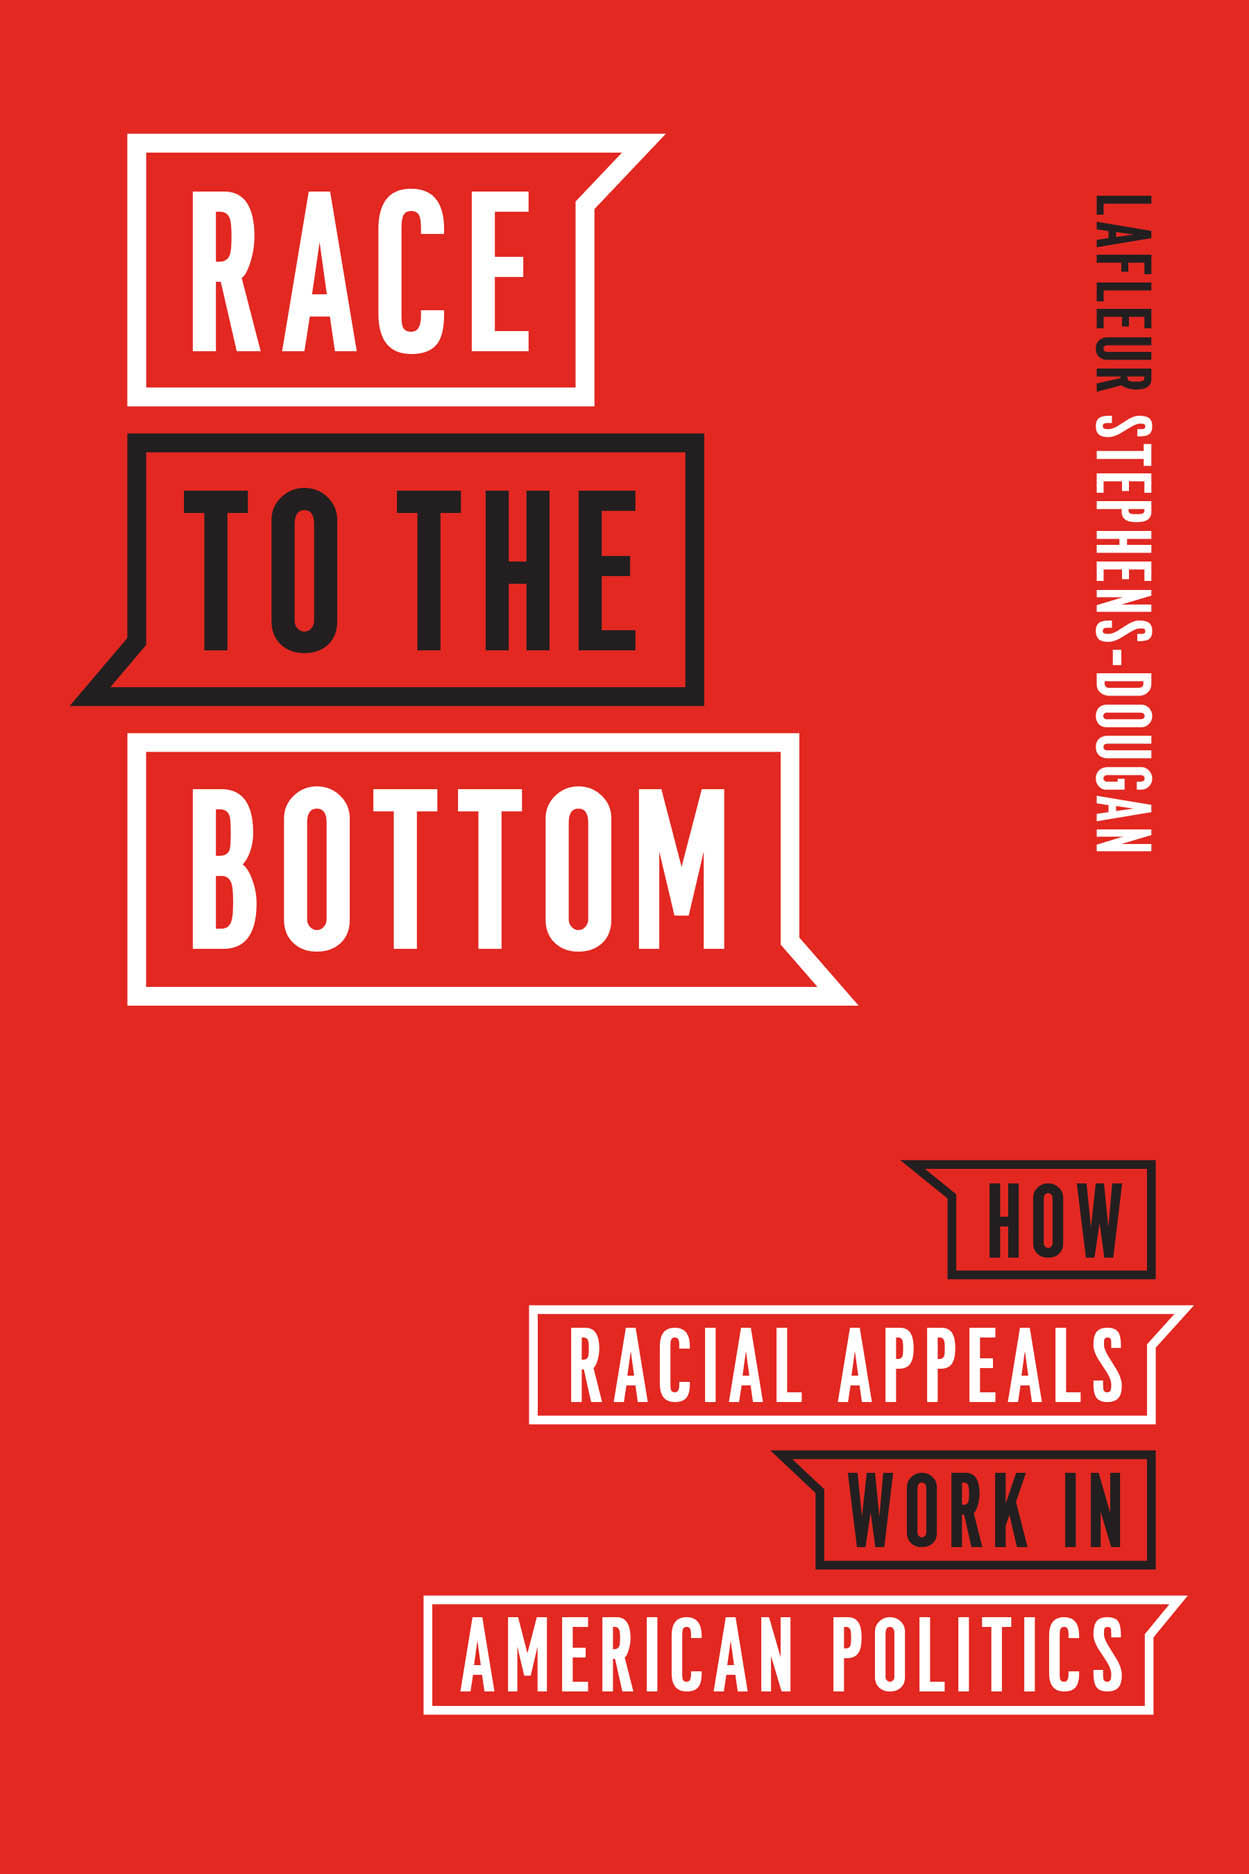 Race to the Bottom: How Racial Appeals Work in American Politics